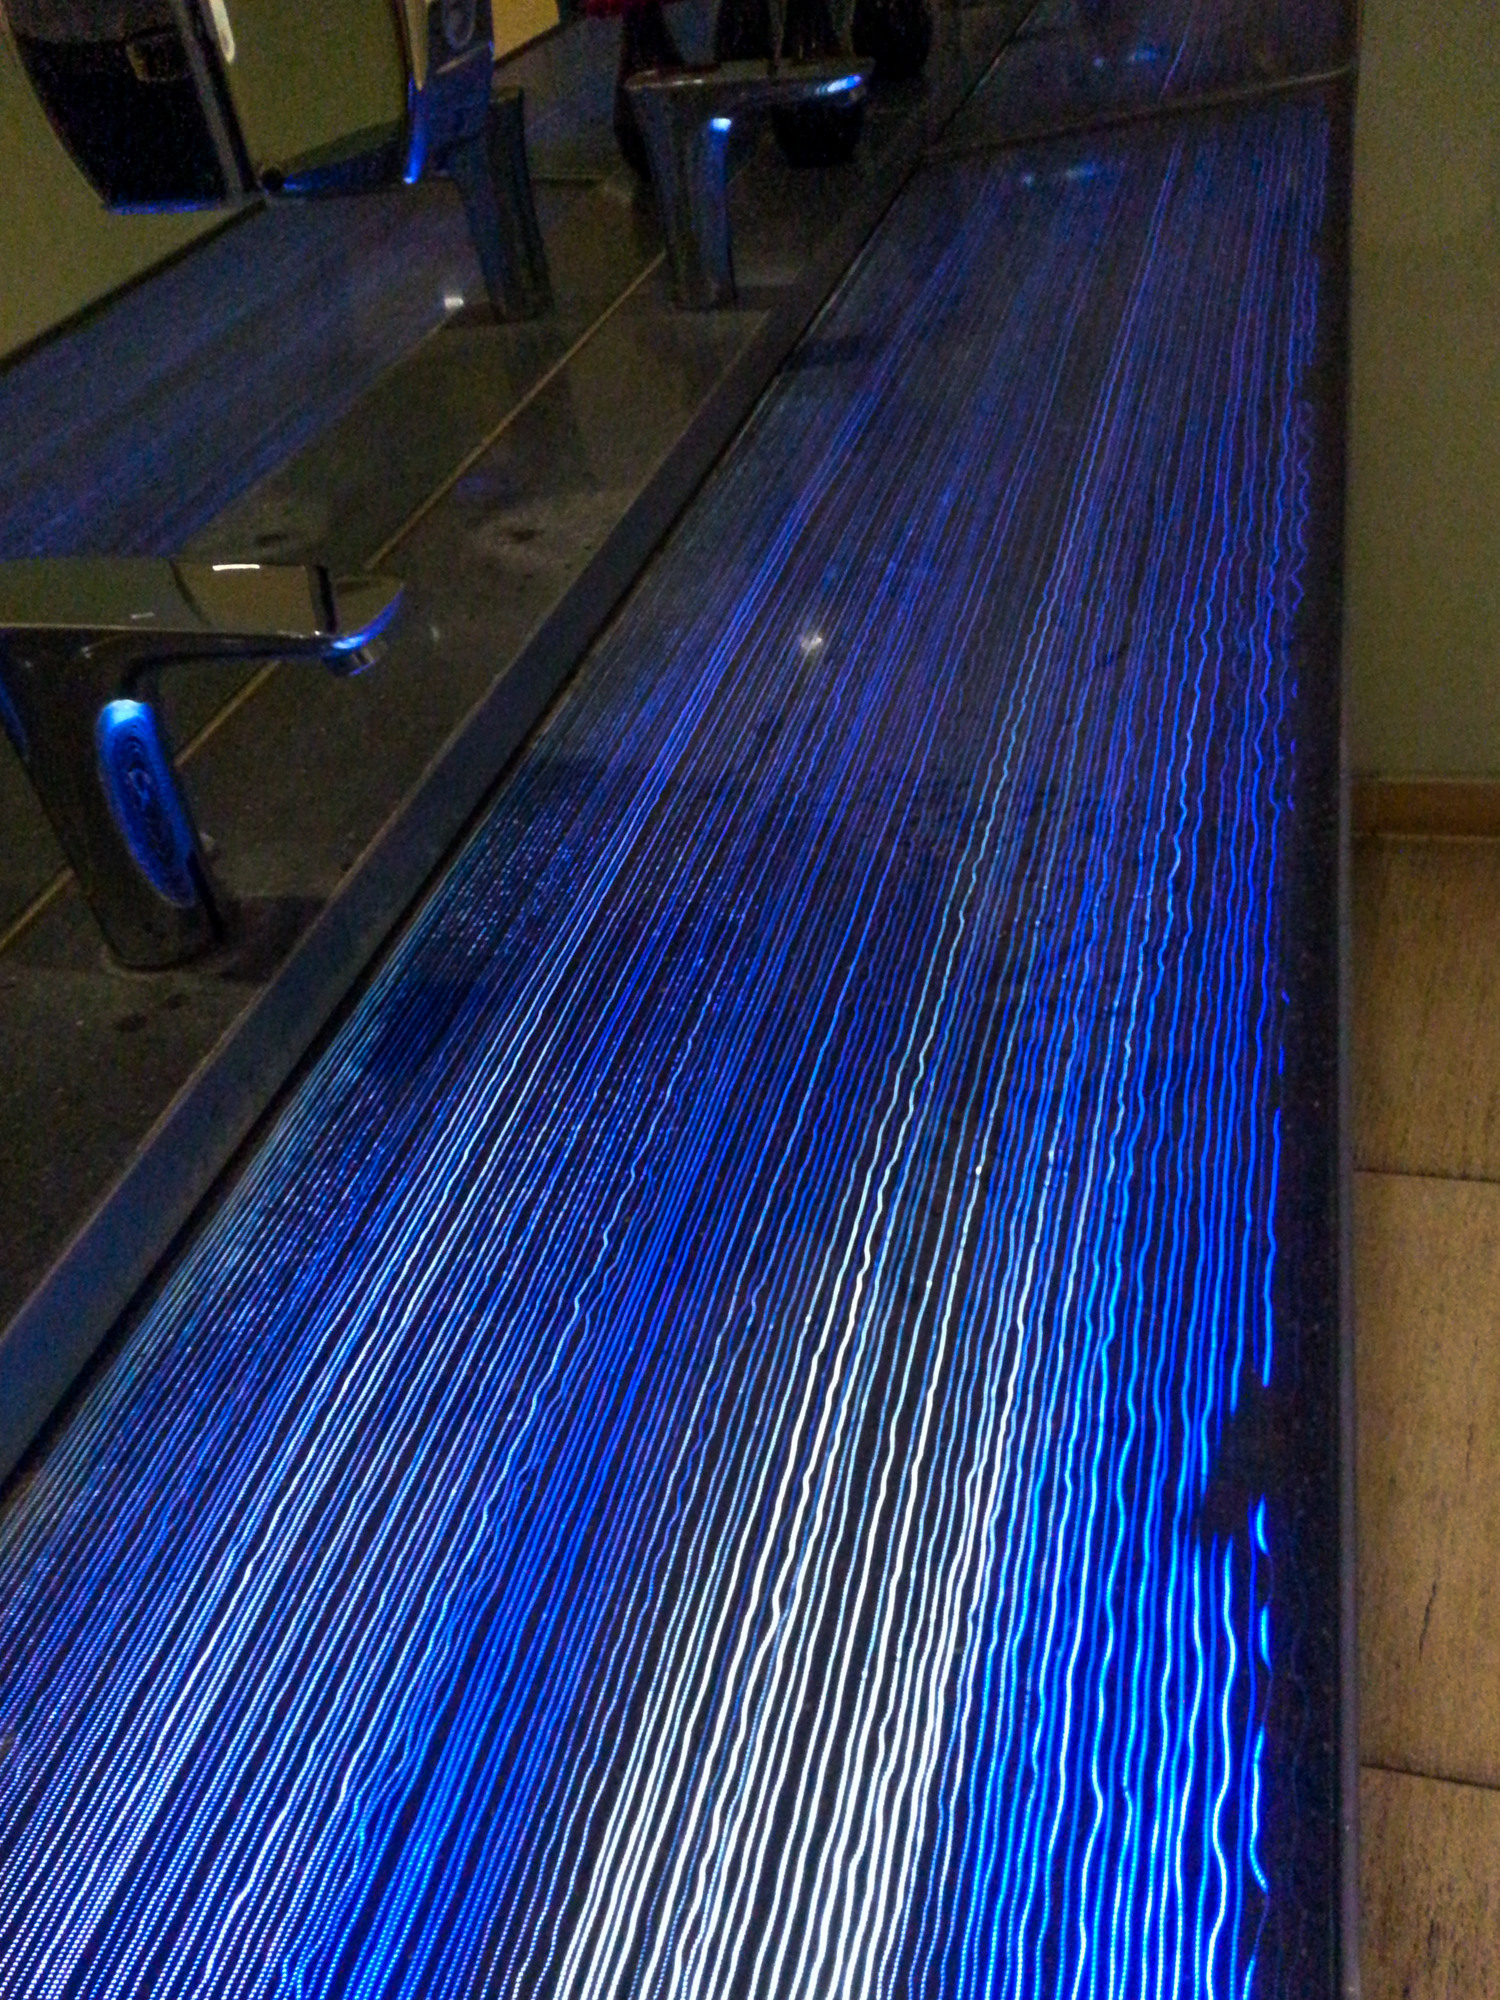 This beautiful light streaks were on the wash basin strip in the Europe restaurant!